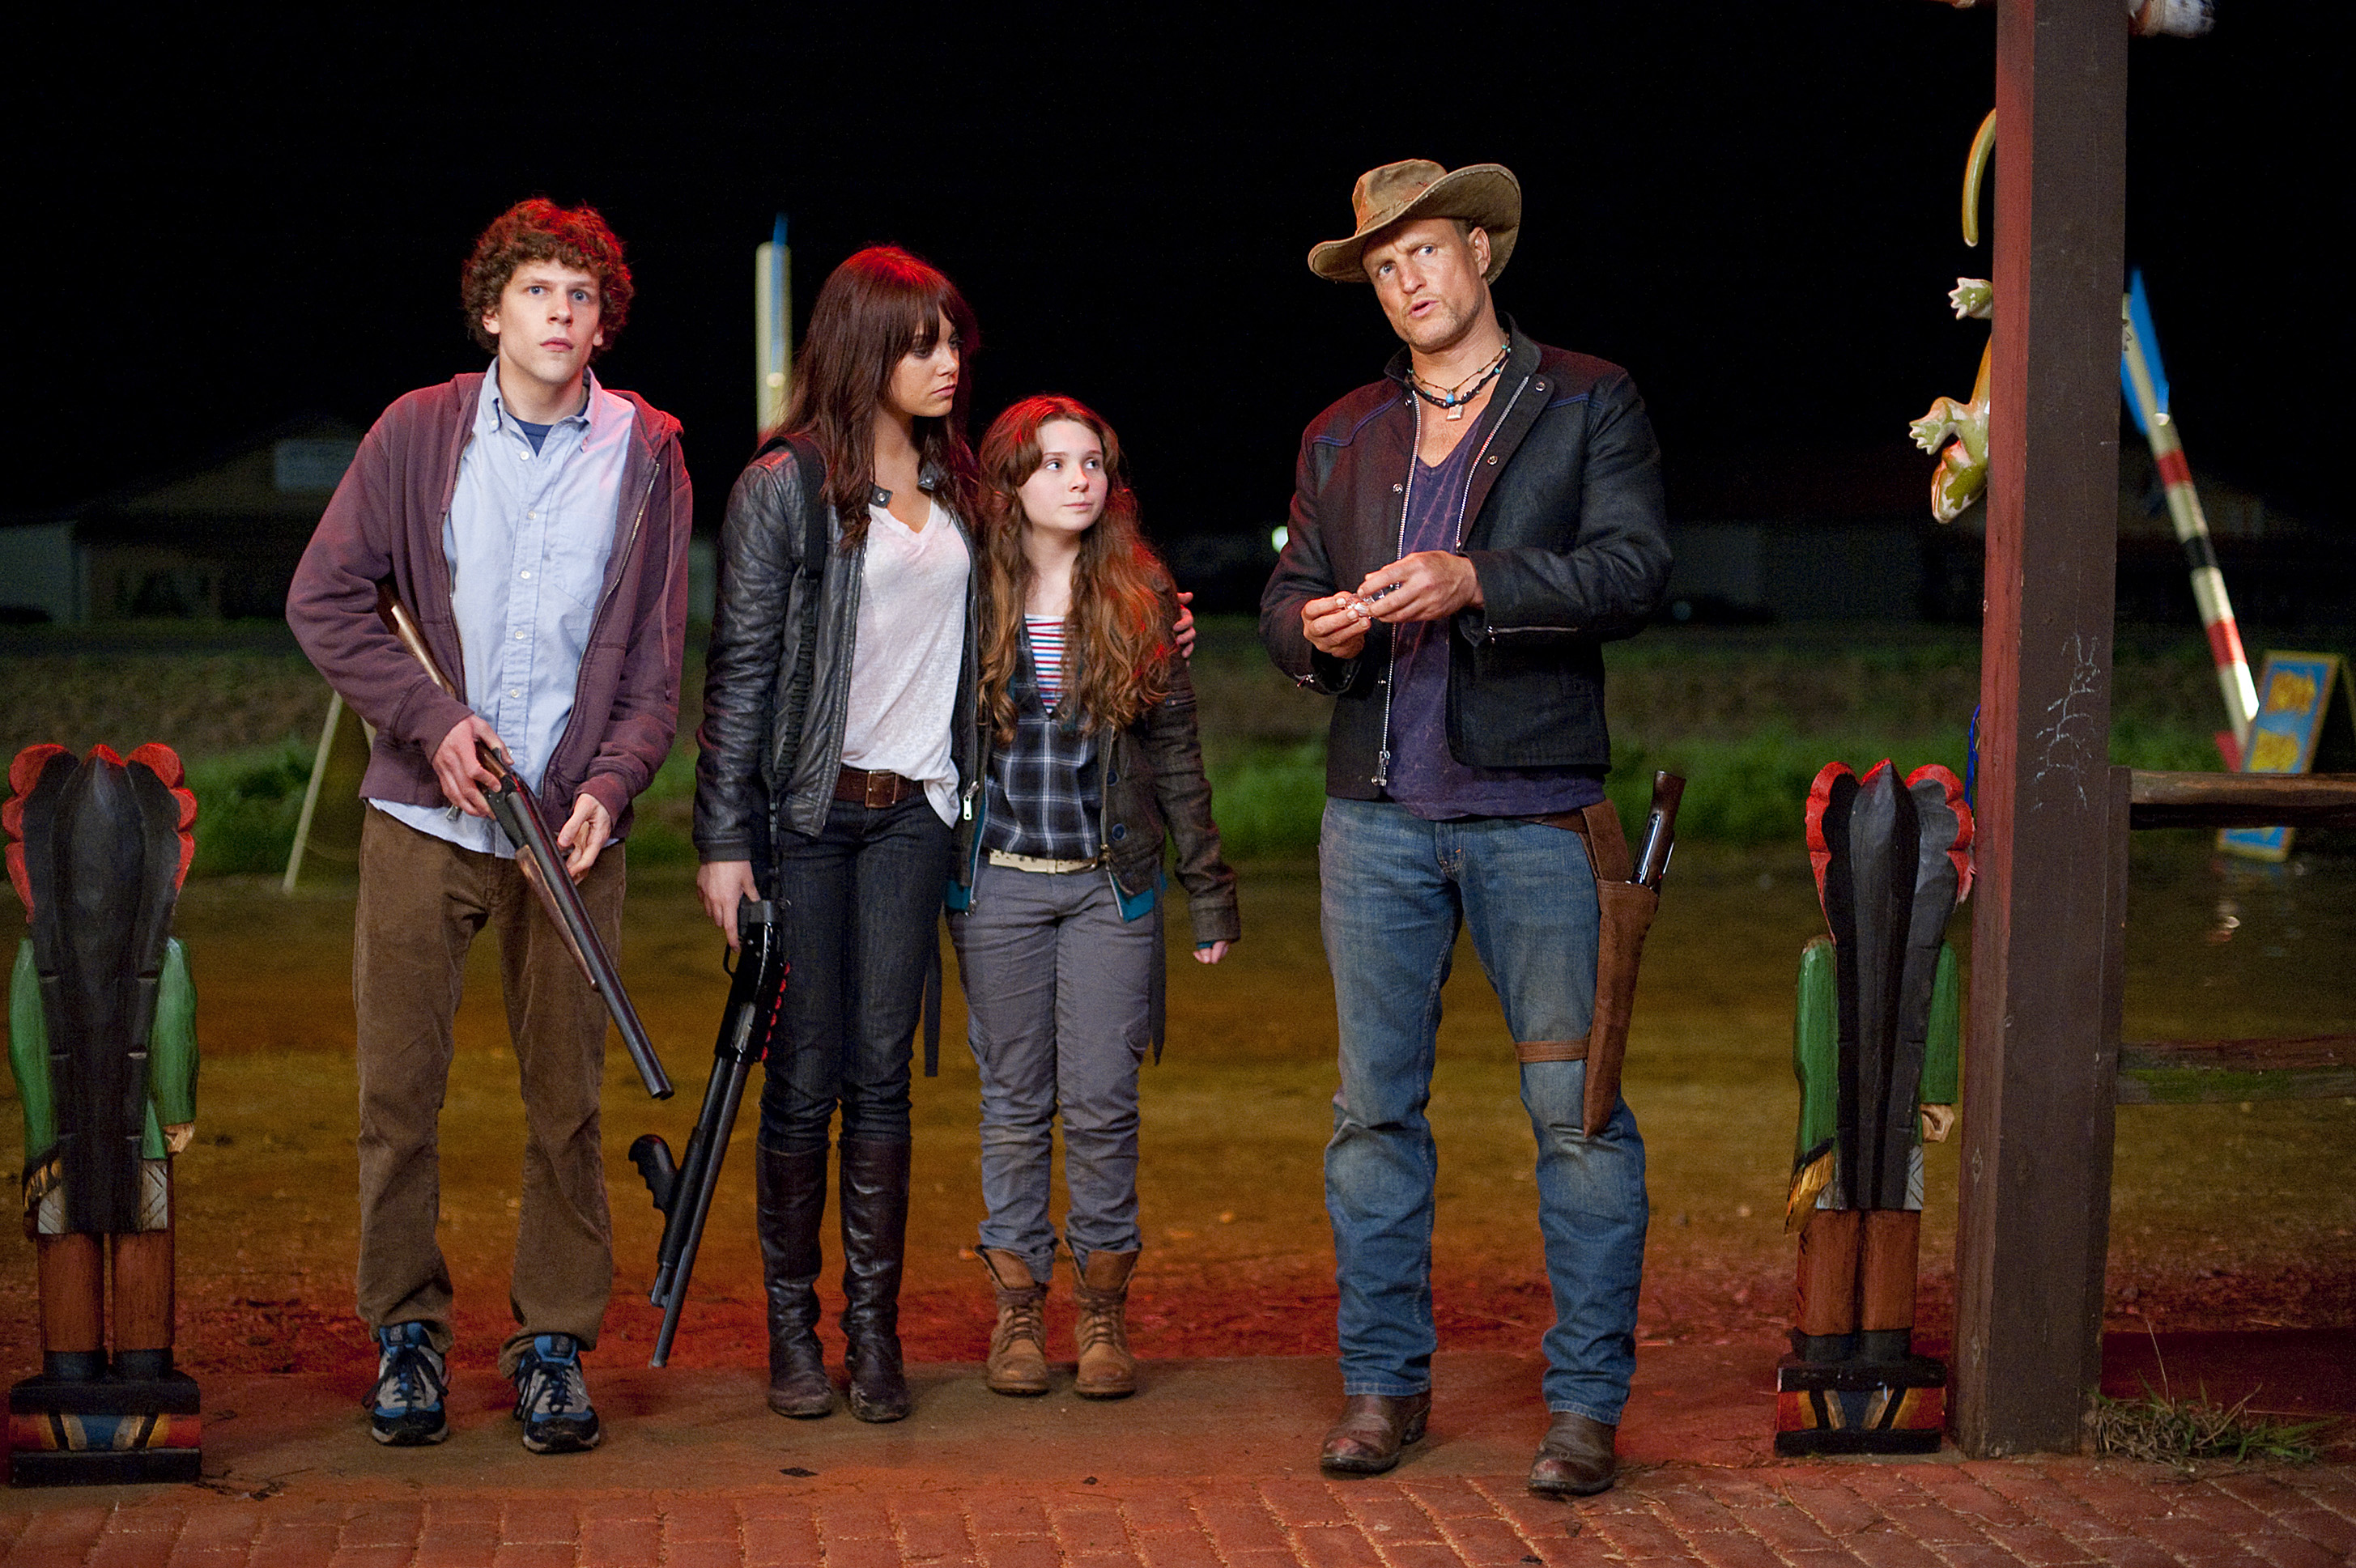 ZOMBIELAND, from left: Jesse Eisenberg, Emma Stone, Abigail Breslin, Woody Harrelson, 2009. Ph: Glen Wilson/©Columbia Pictures/Courtesy Everett Collection